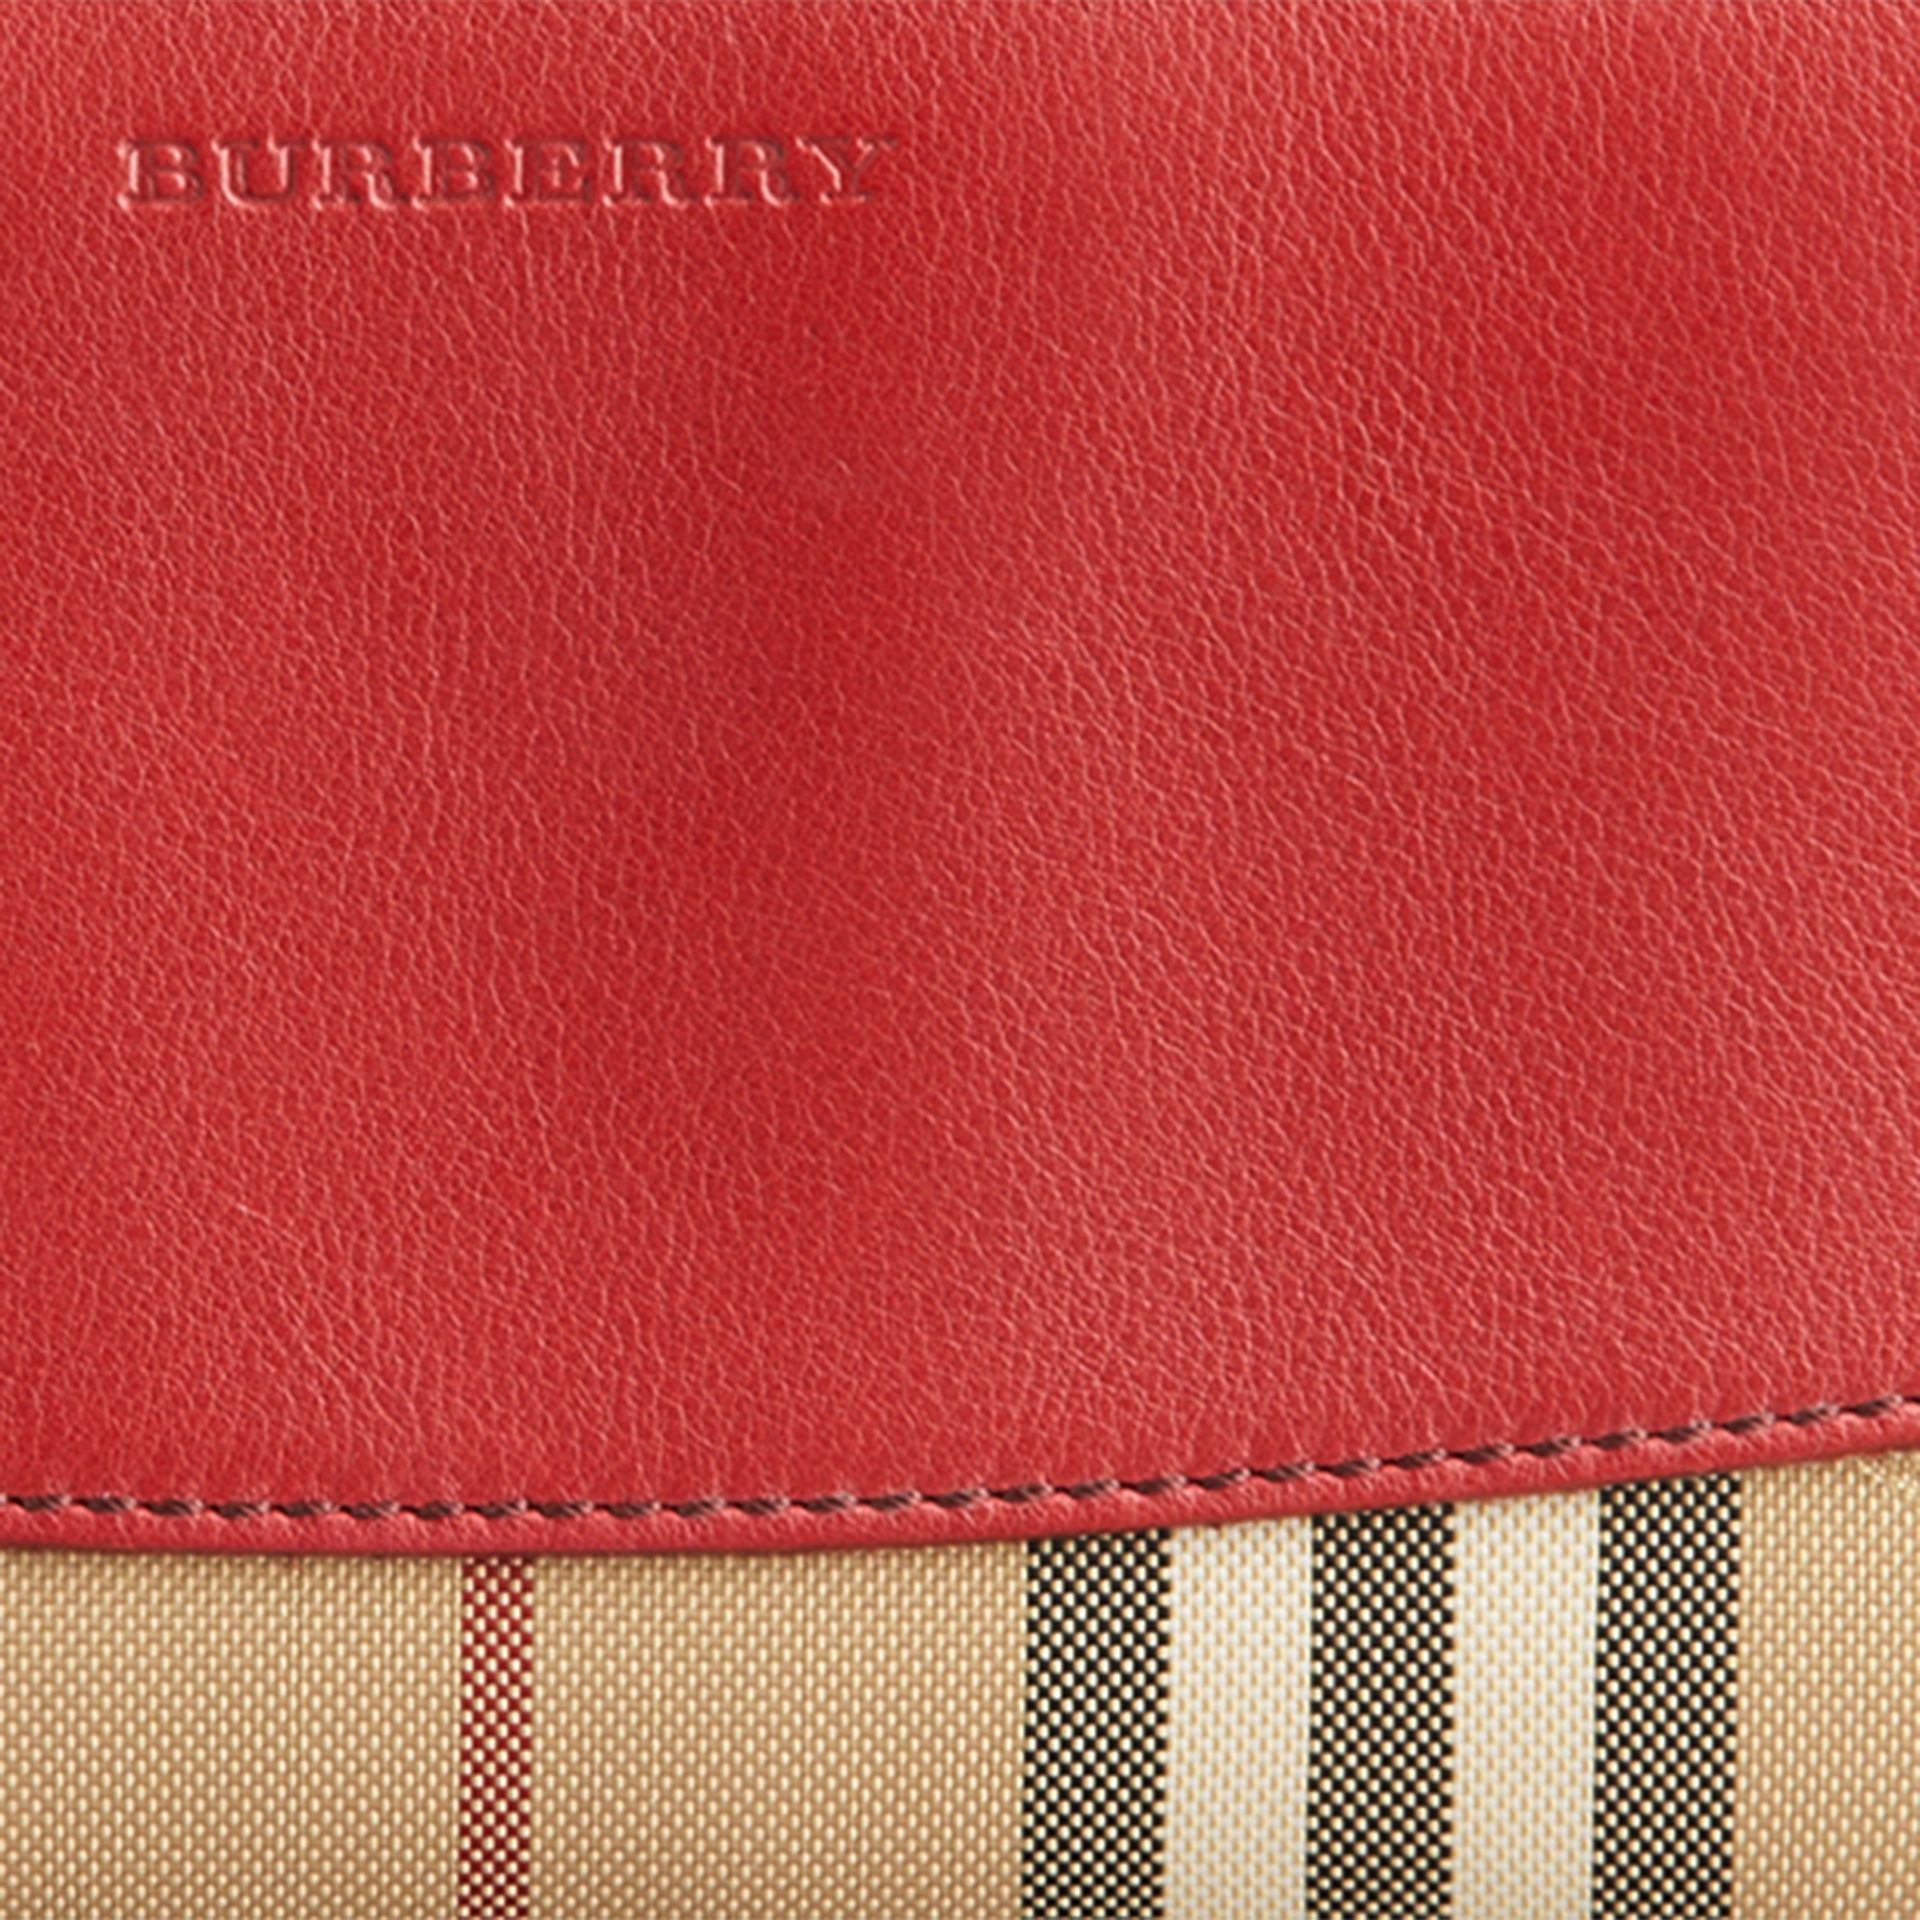 Horseferry Check and Leather Ziparound Wallet in Parade Red - Women | Burberry United Kingdom - gallery image 2